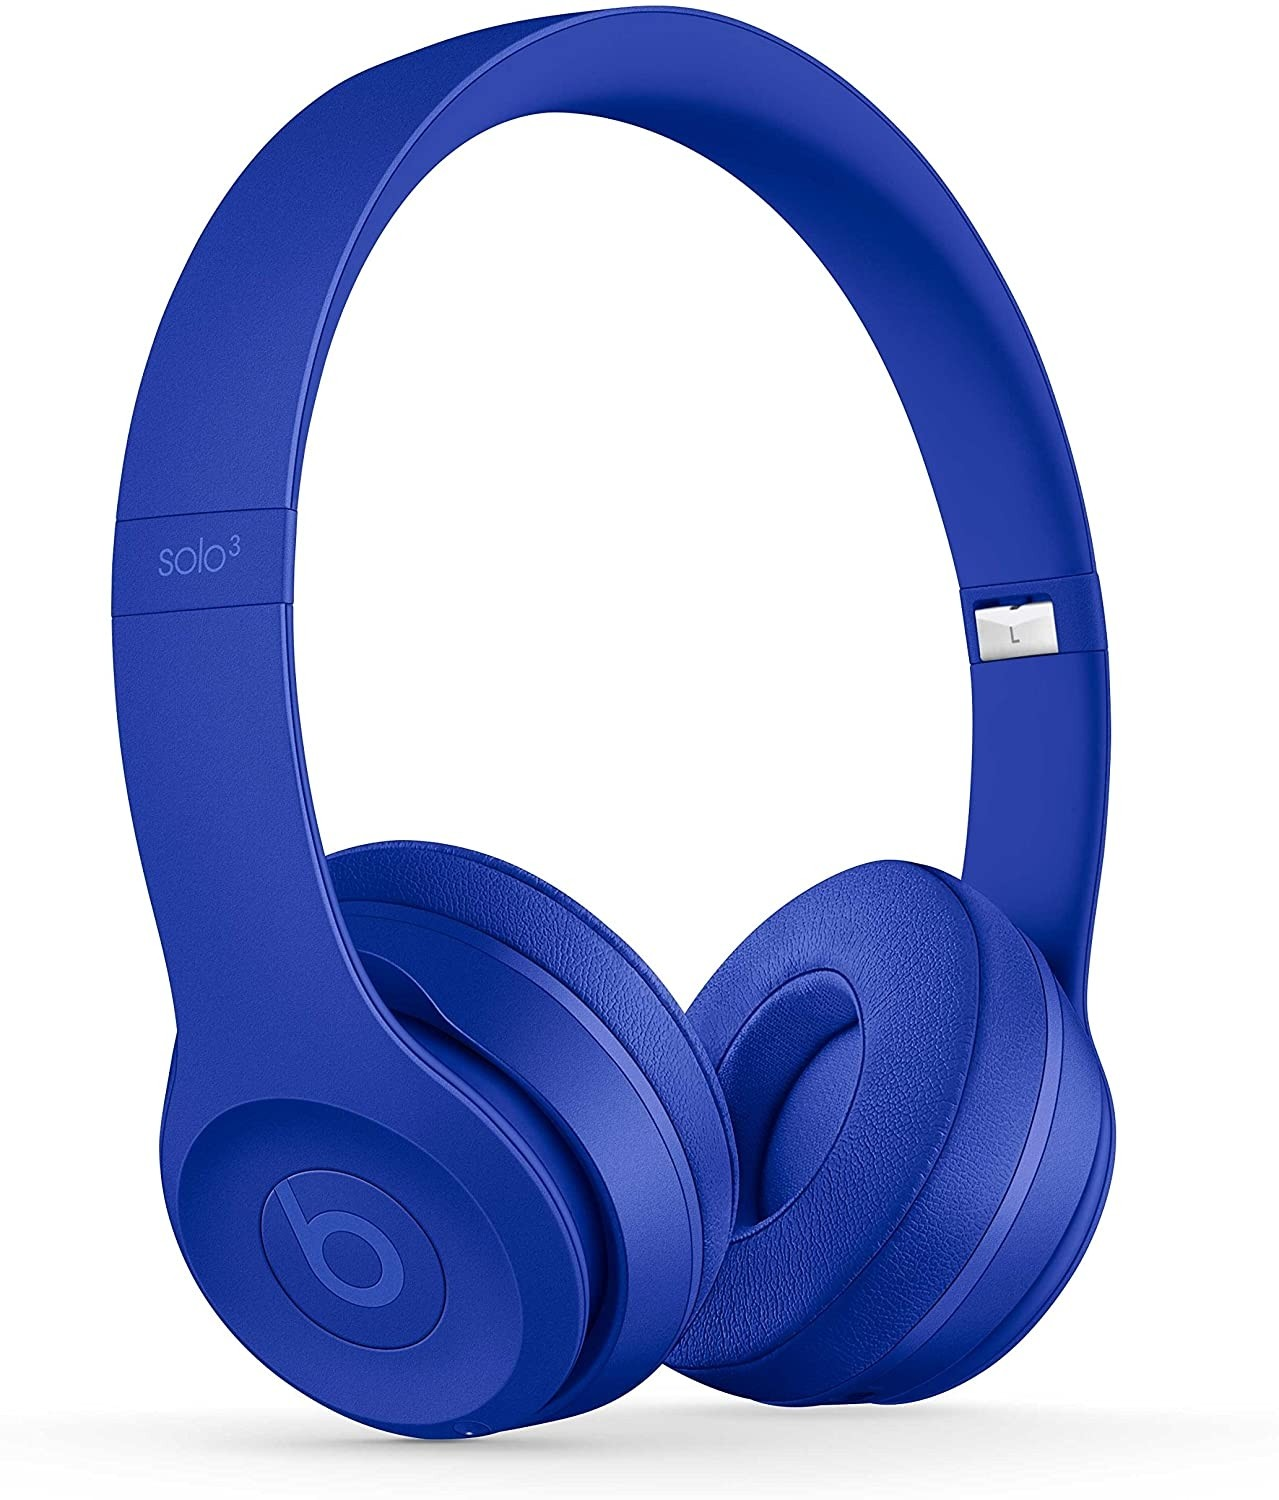 Beats Solo3 Wireless On-Ear Headphones Blue